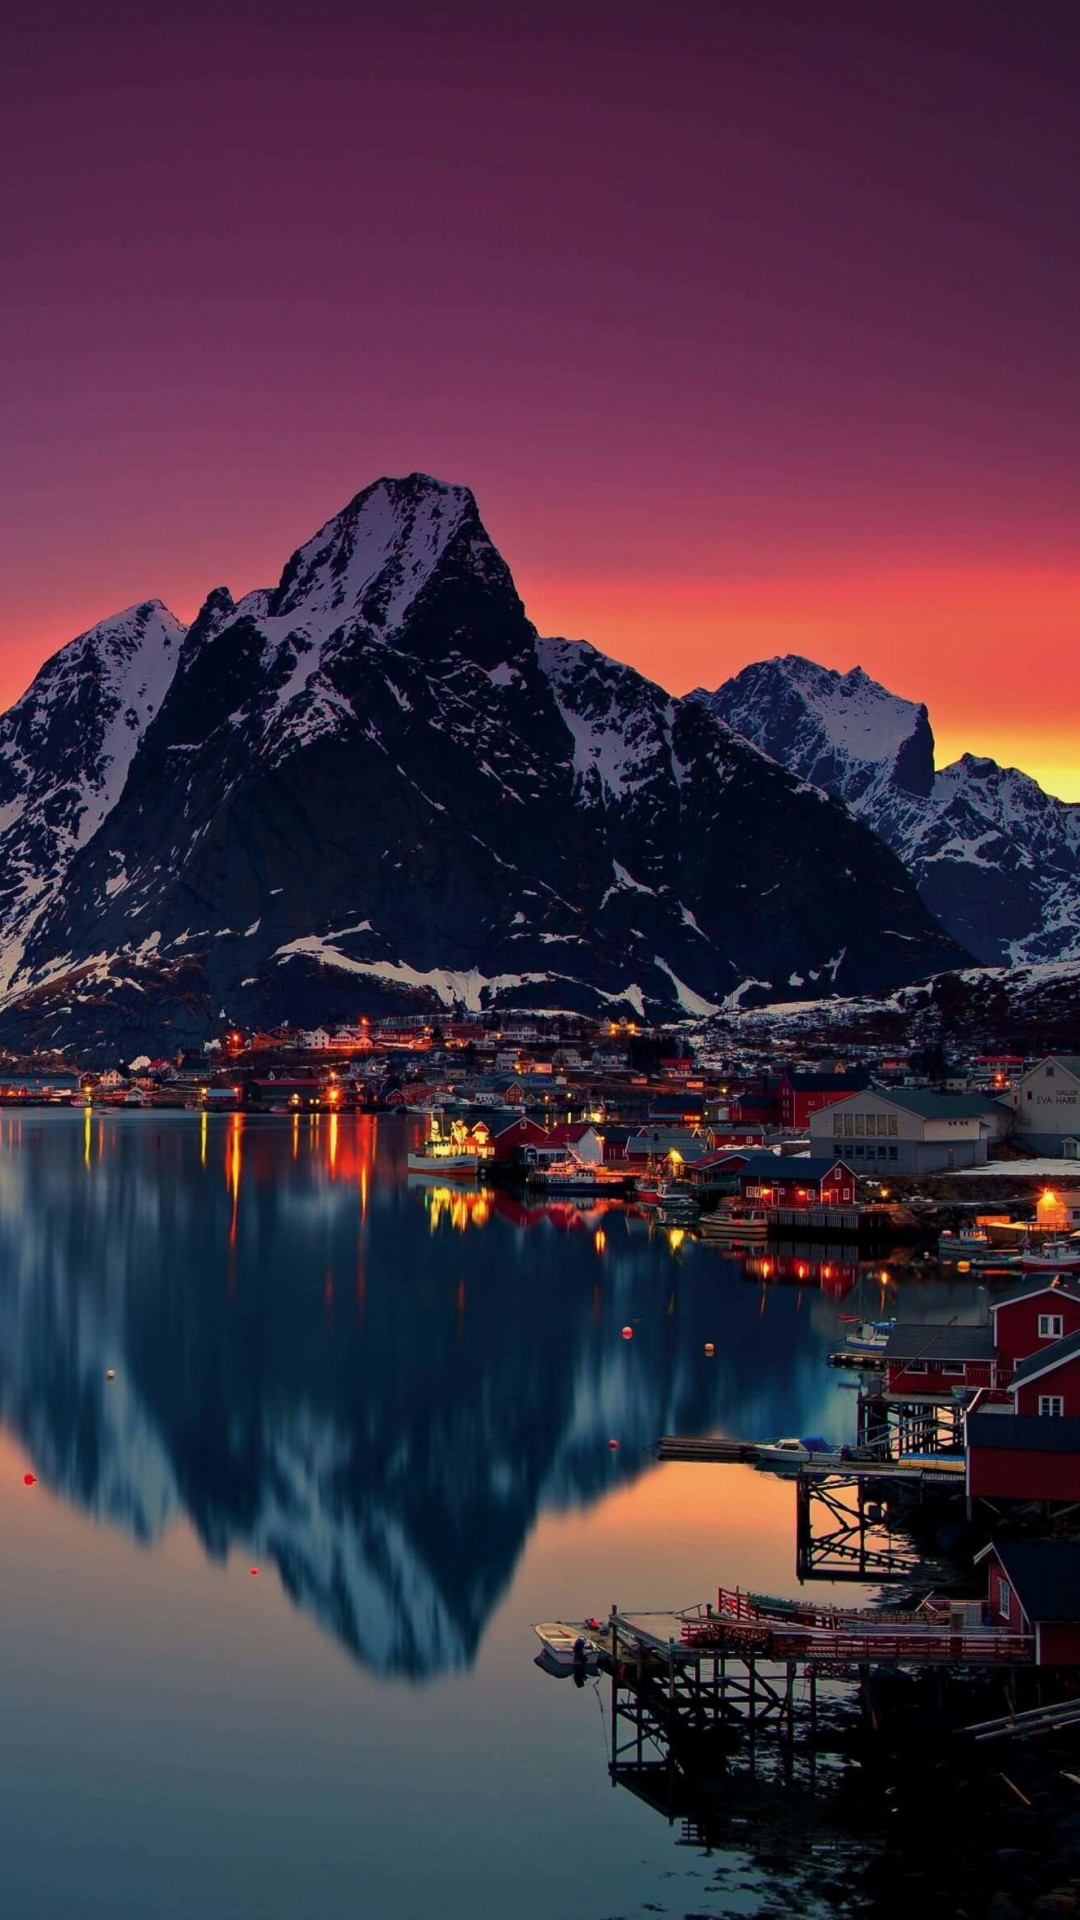 Lofoten Islands, Norway Wallpaper for SAMSUNG Galaxy Note 3